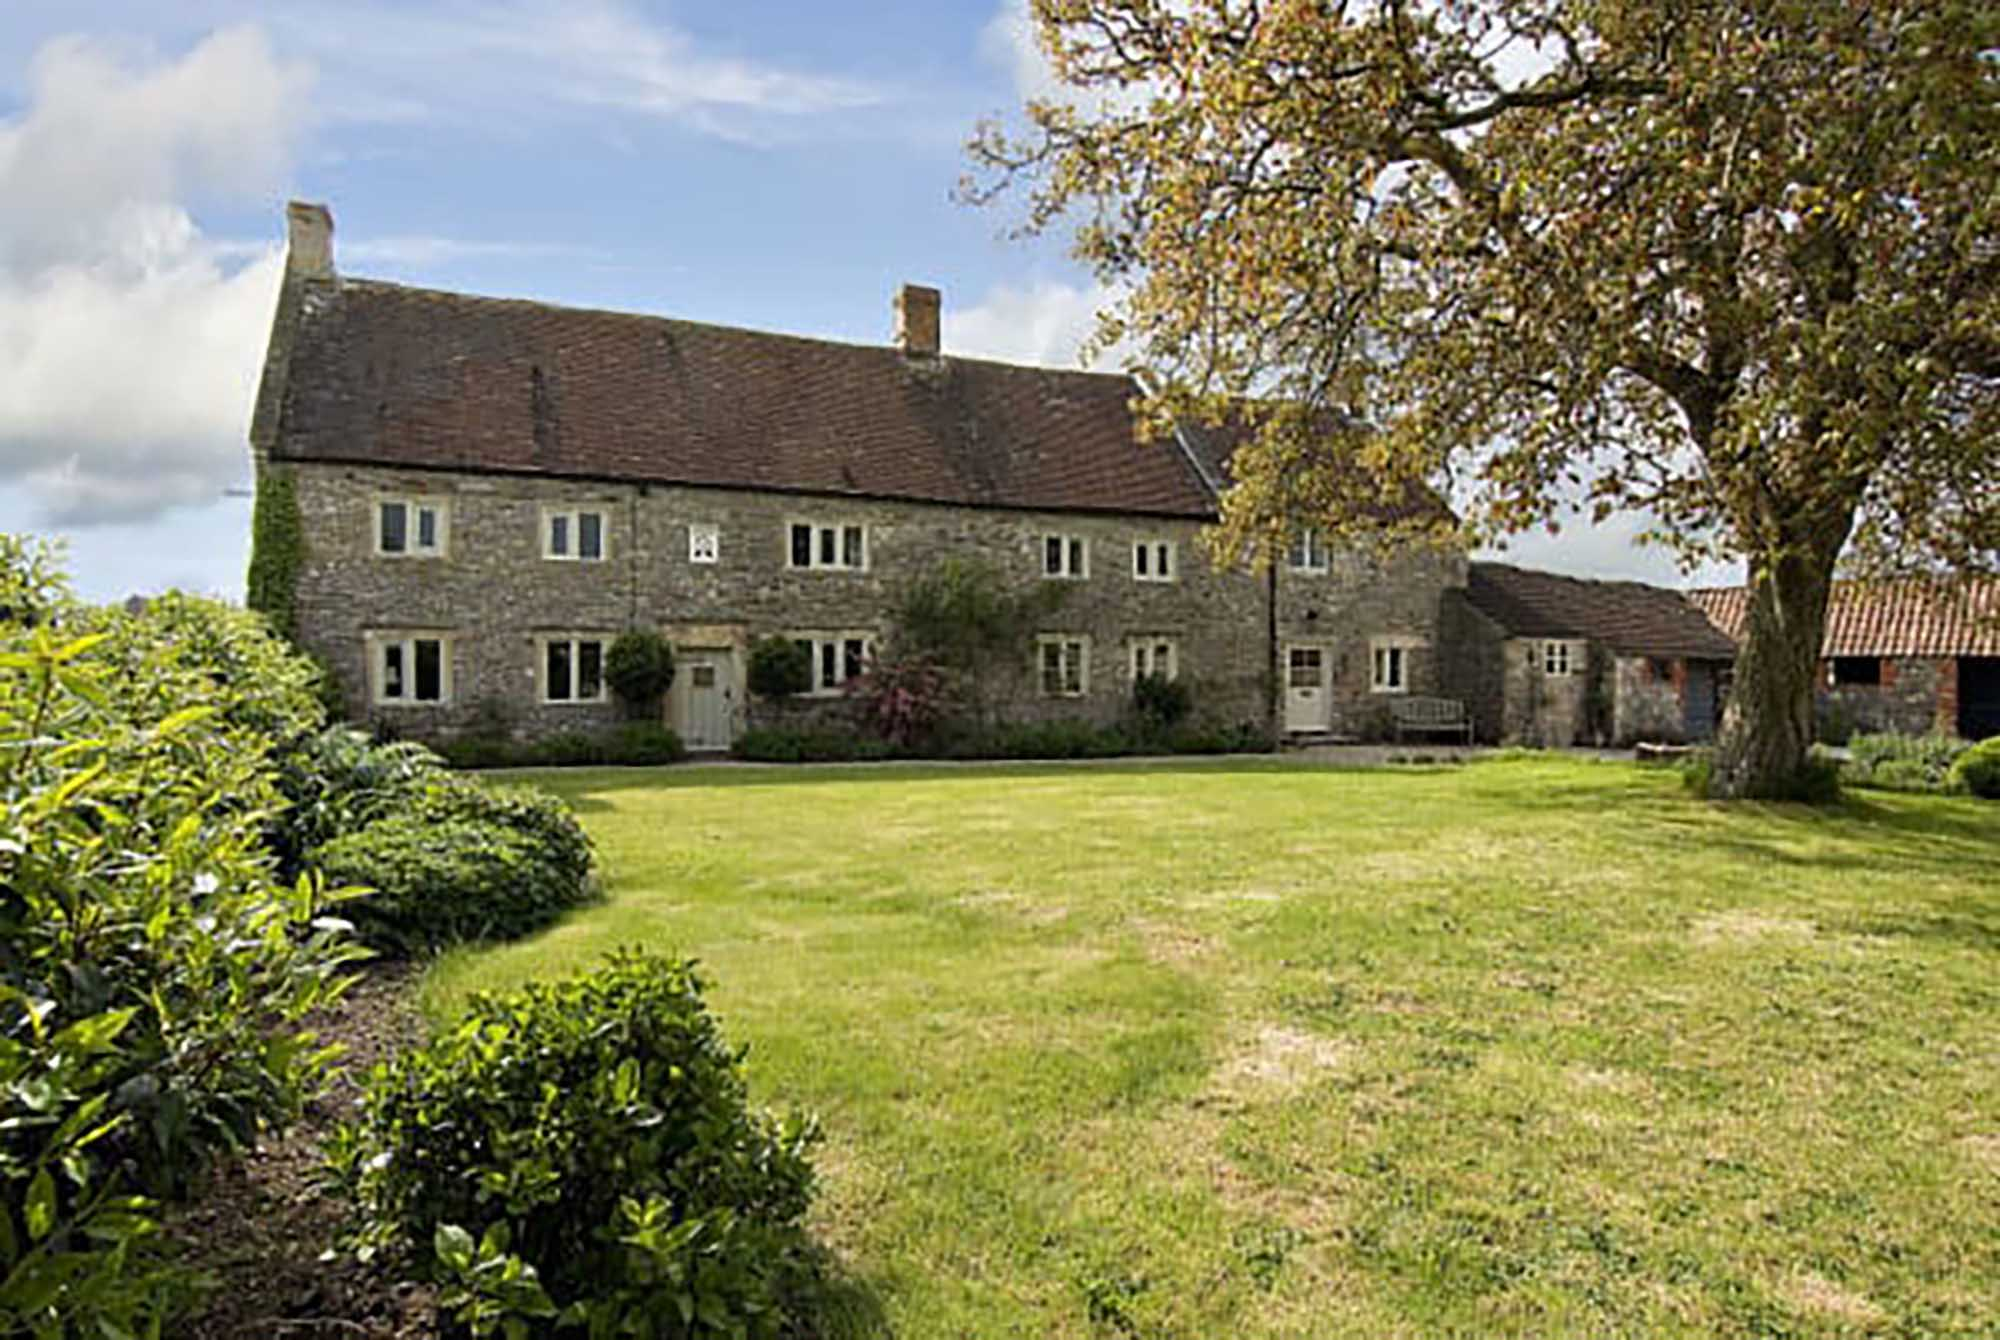 Detached 5 bed house with large stone outbuildings and land